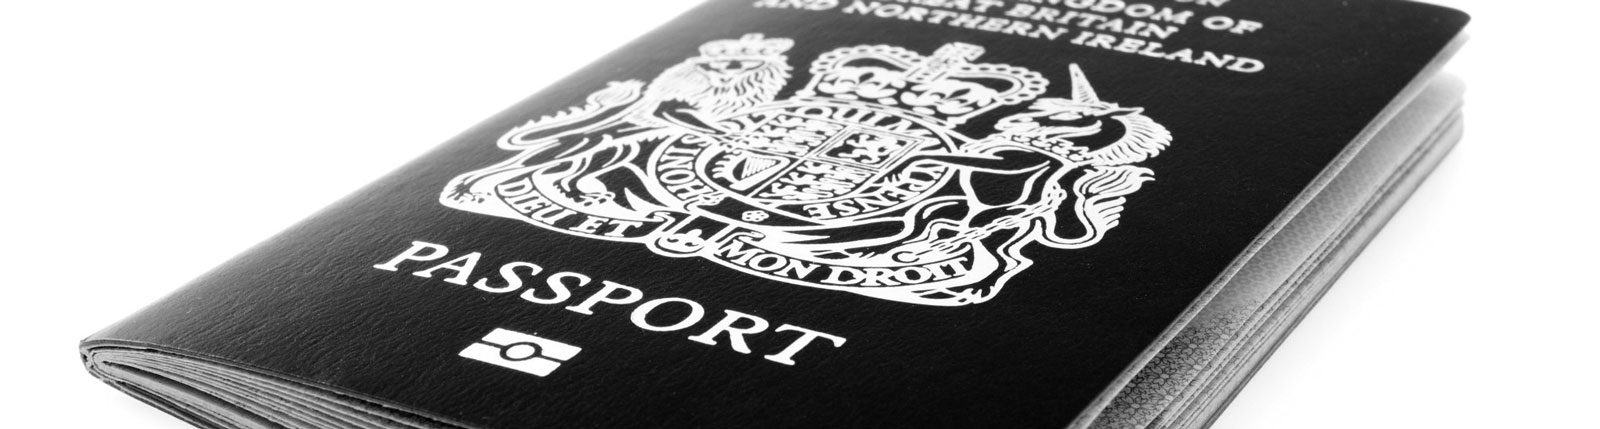 immigration-appeal solicitor croydon